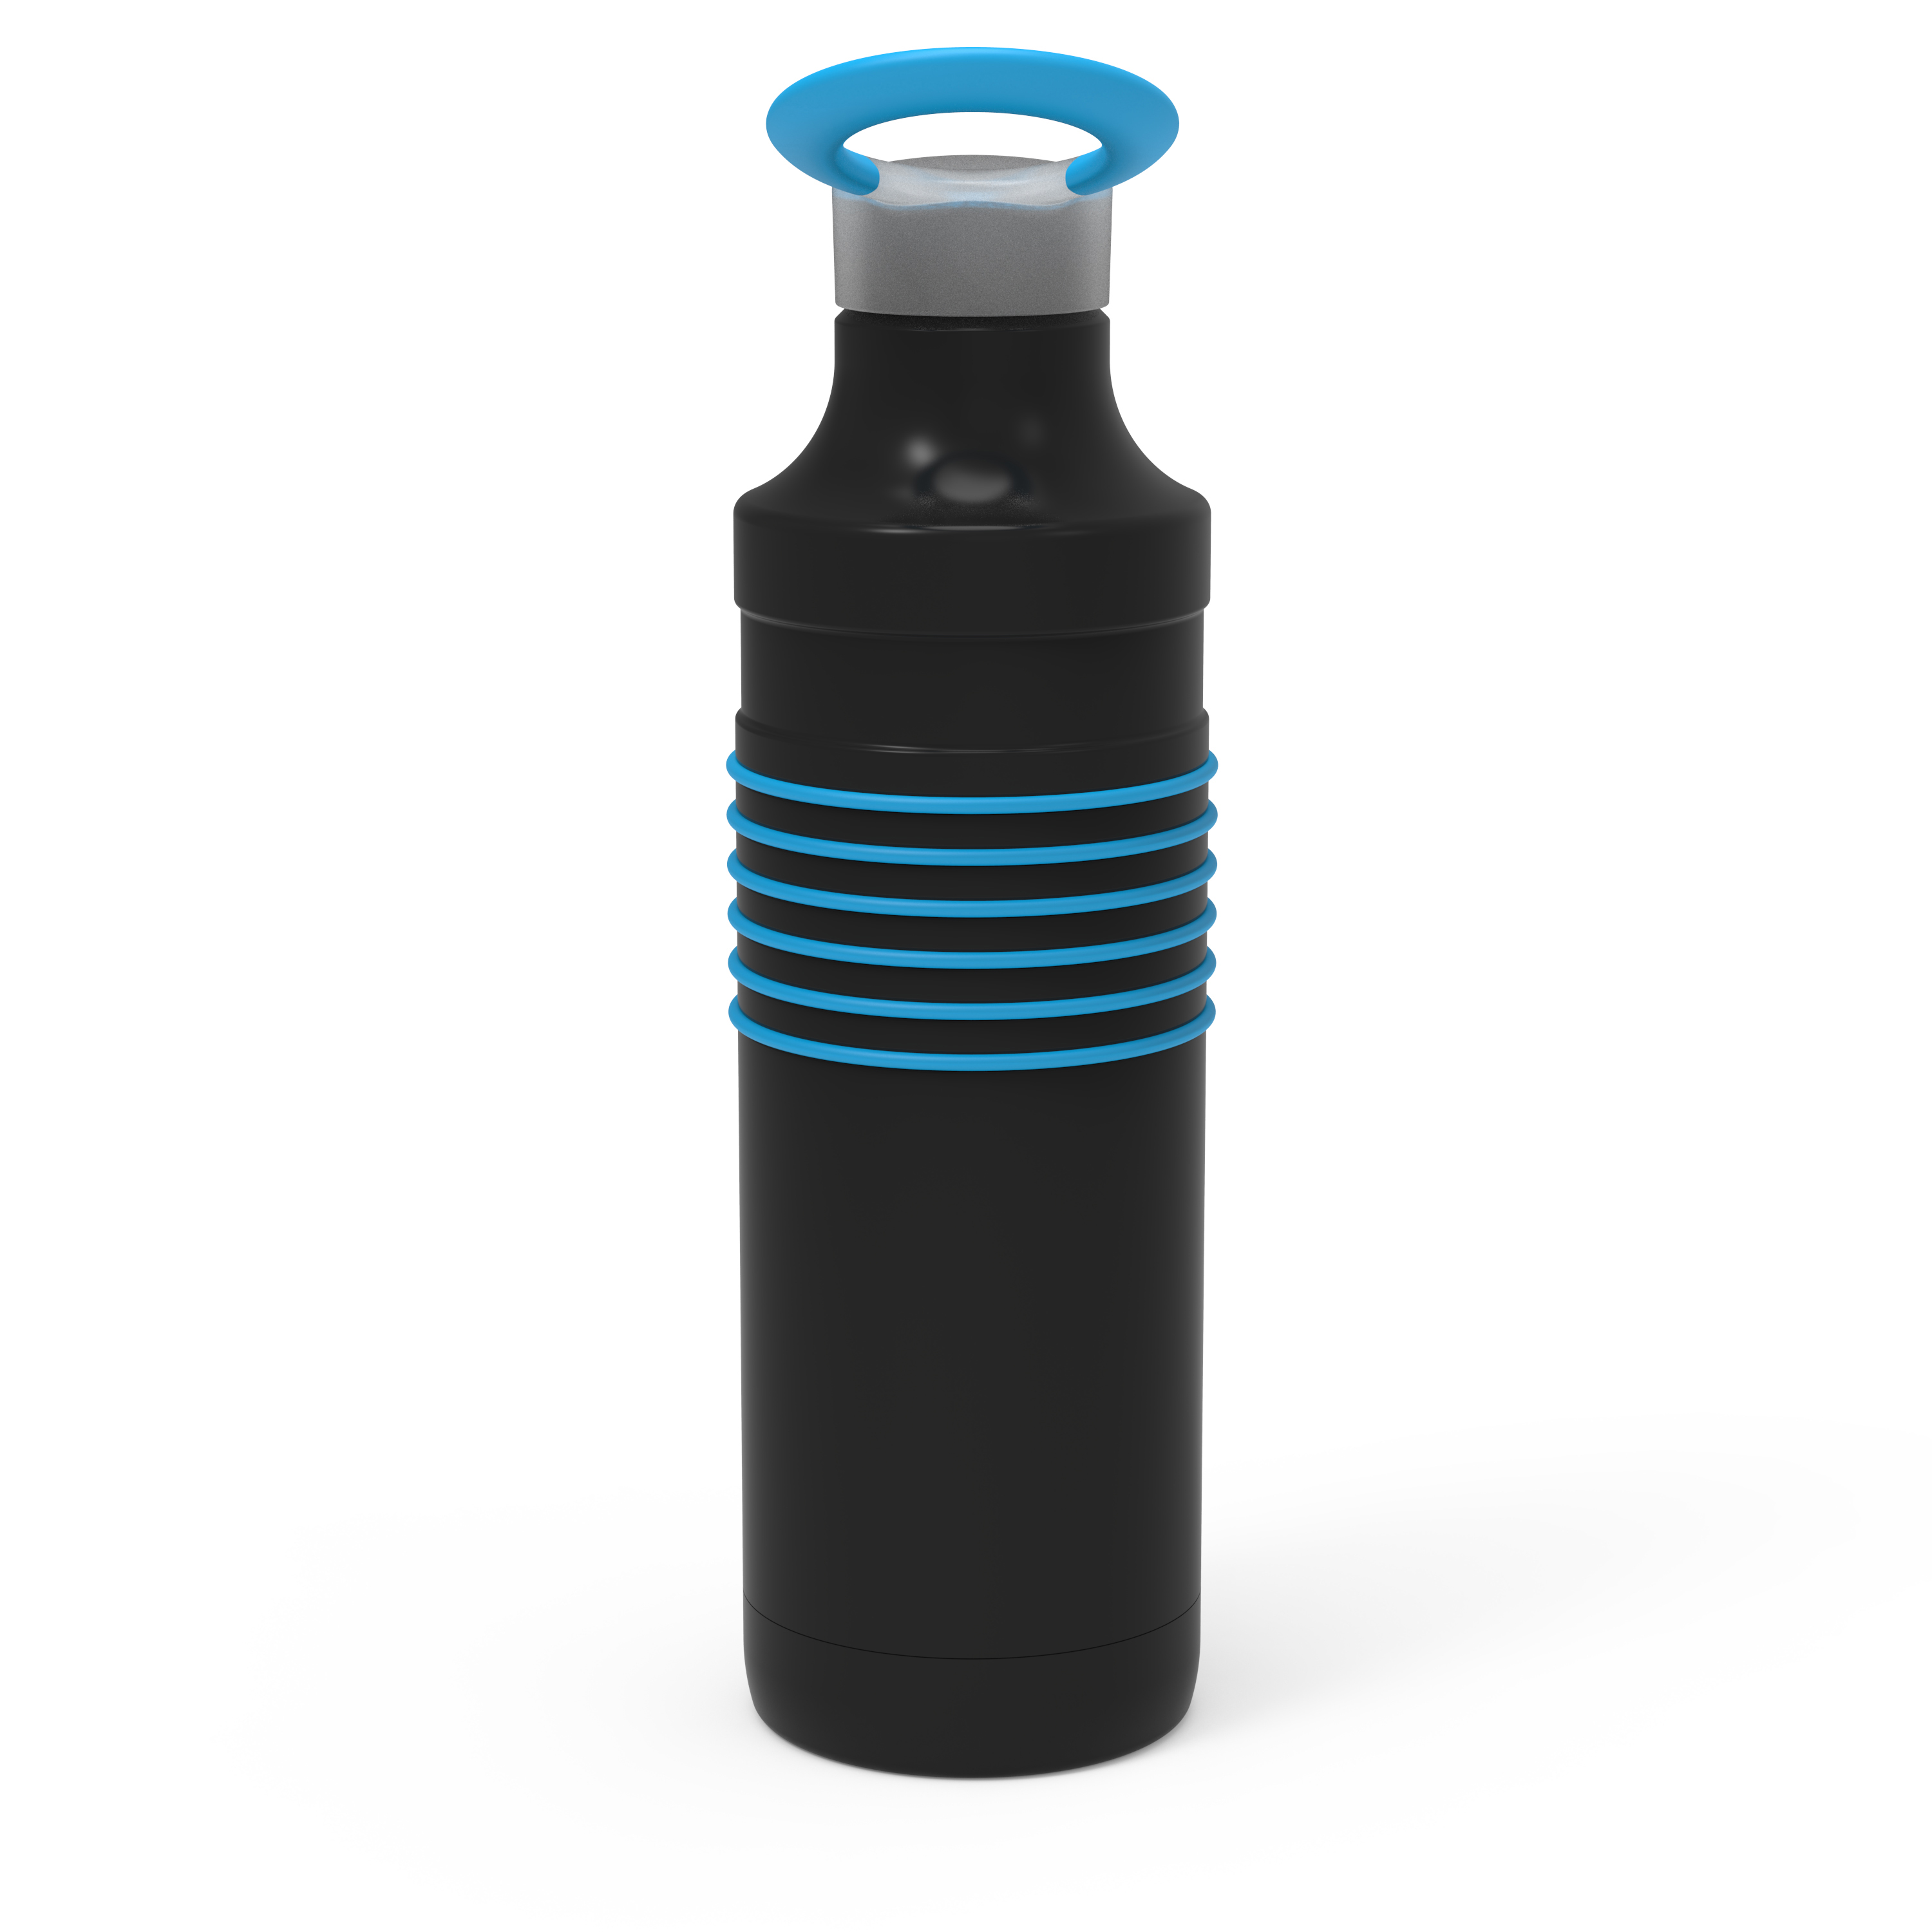 HydraTrak 22 ounce Vacuum Insulated Stainless Steel Tumbler, Black with Blue Rings slideshow image 8